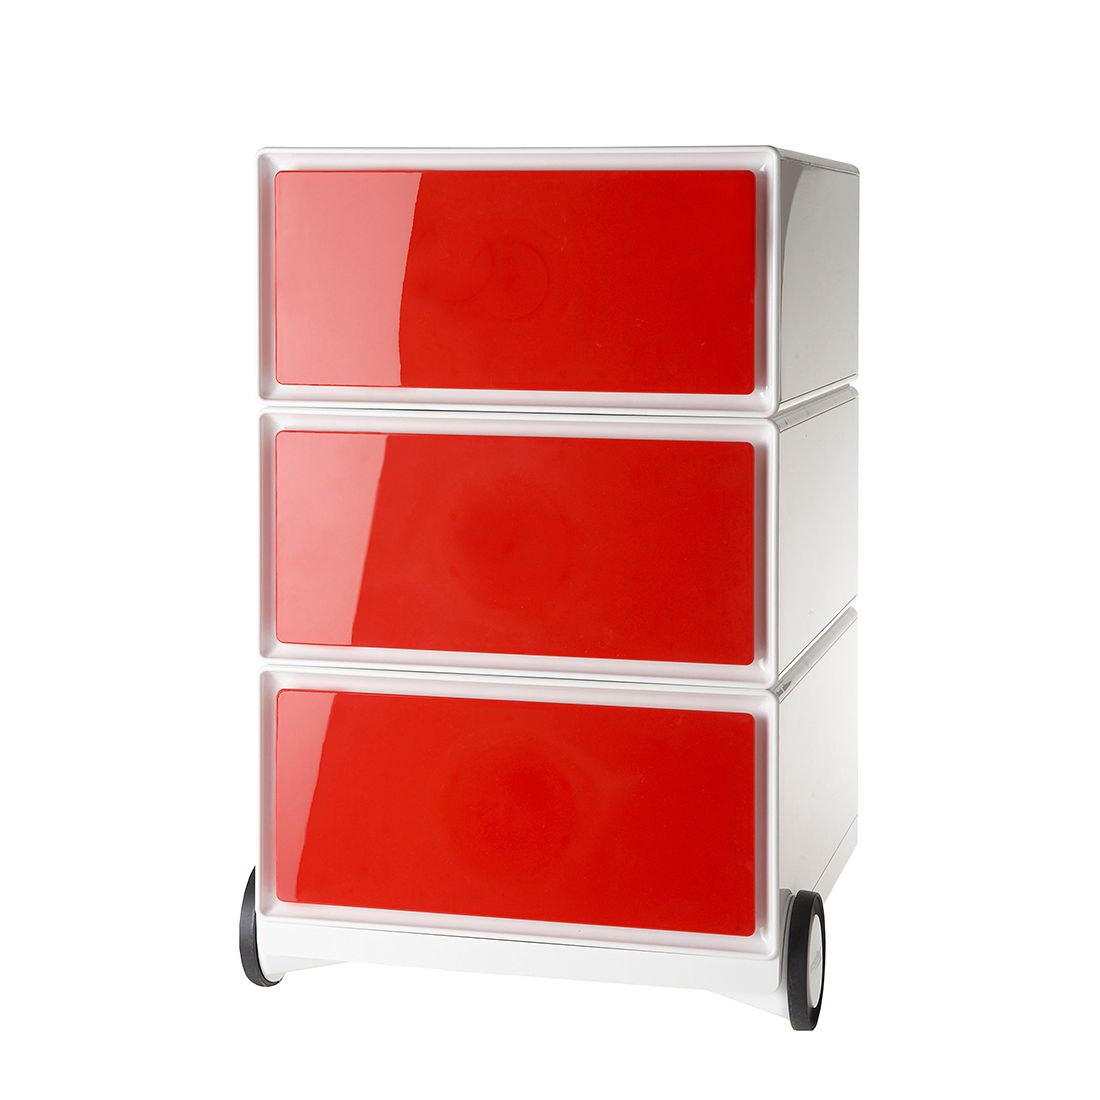 Rollende kast easyBox I - Wit/rood, easy Office und Paperflow